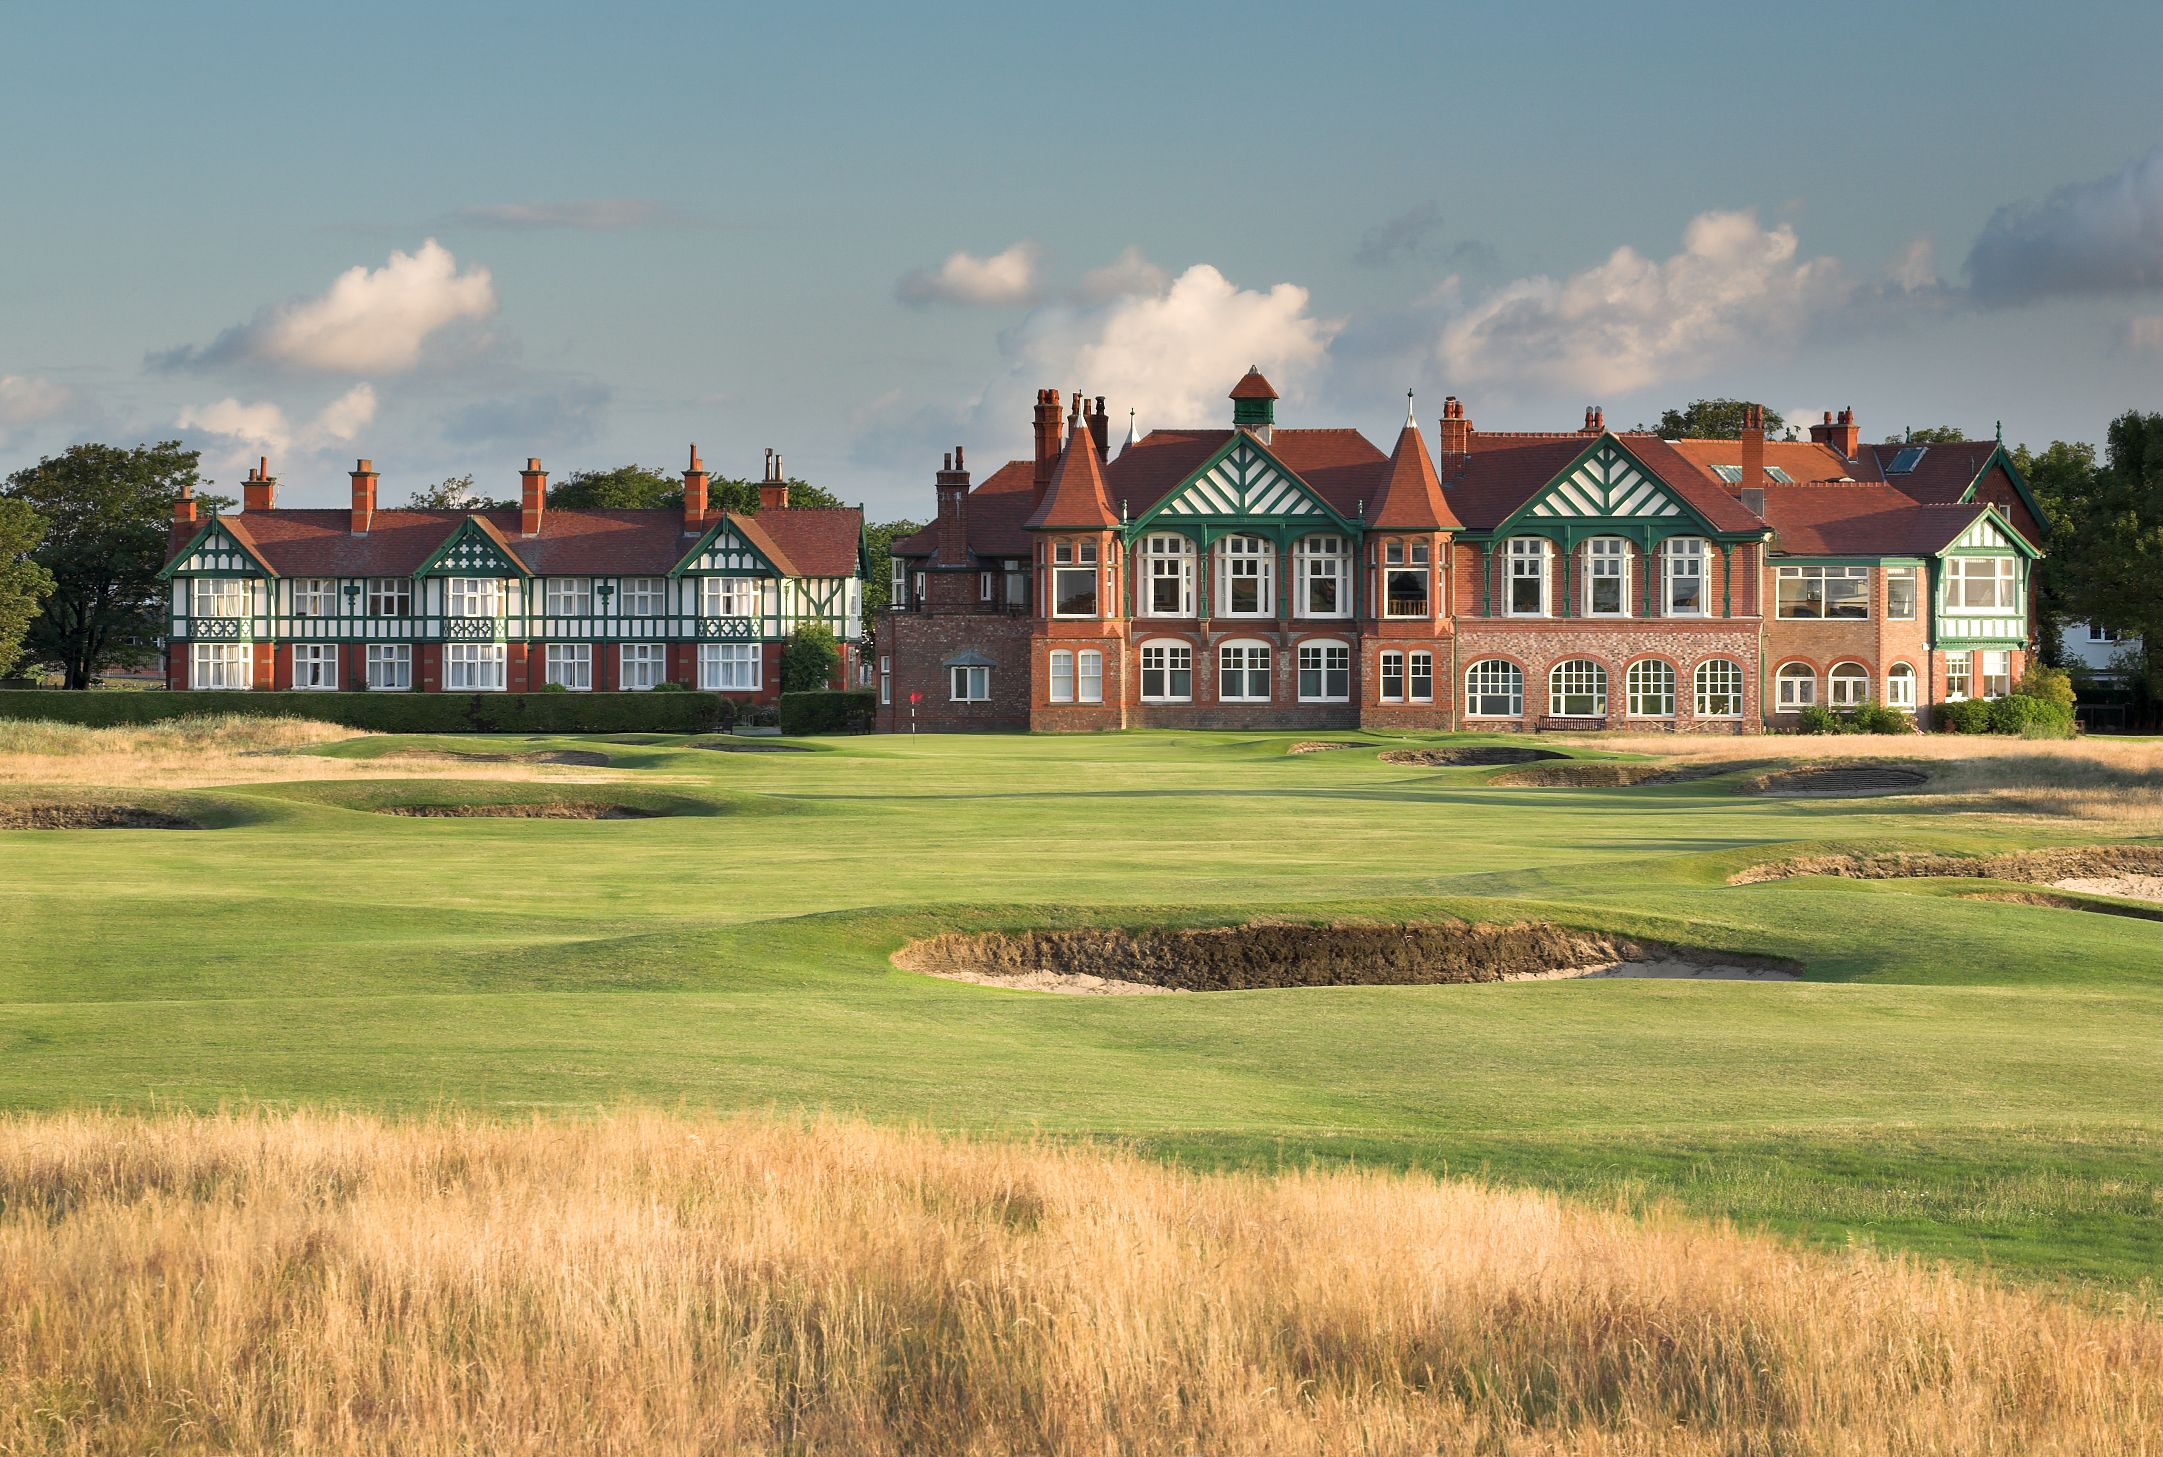 Royal lytham saint annes golf club cover picture